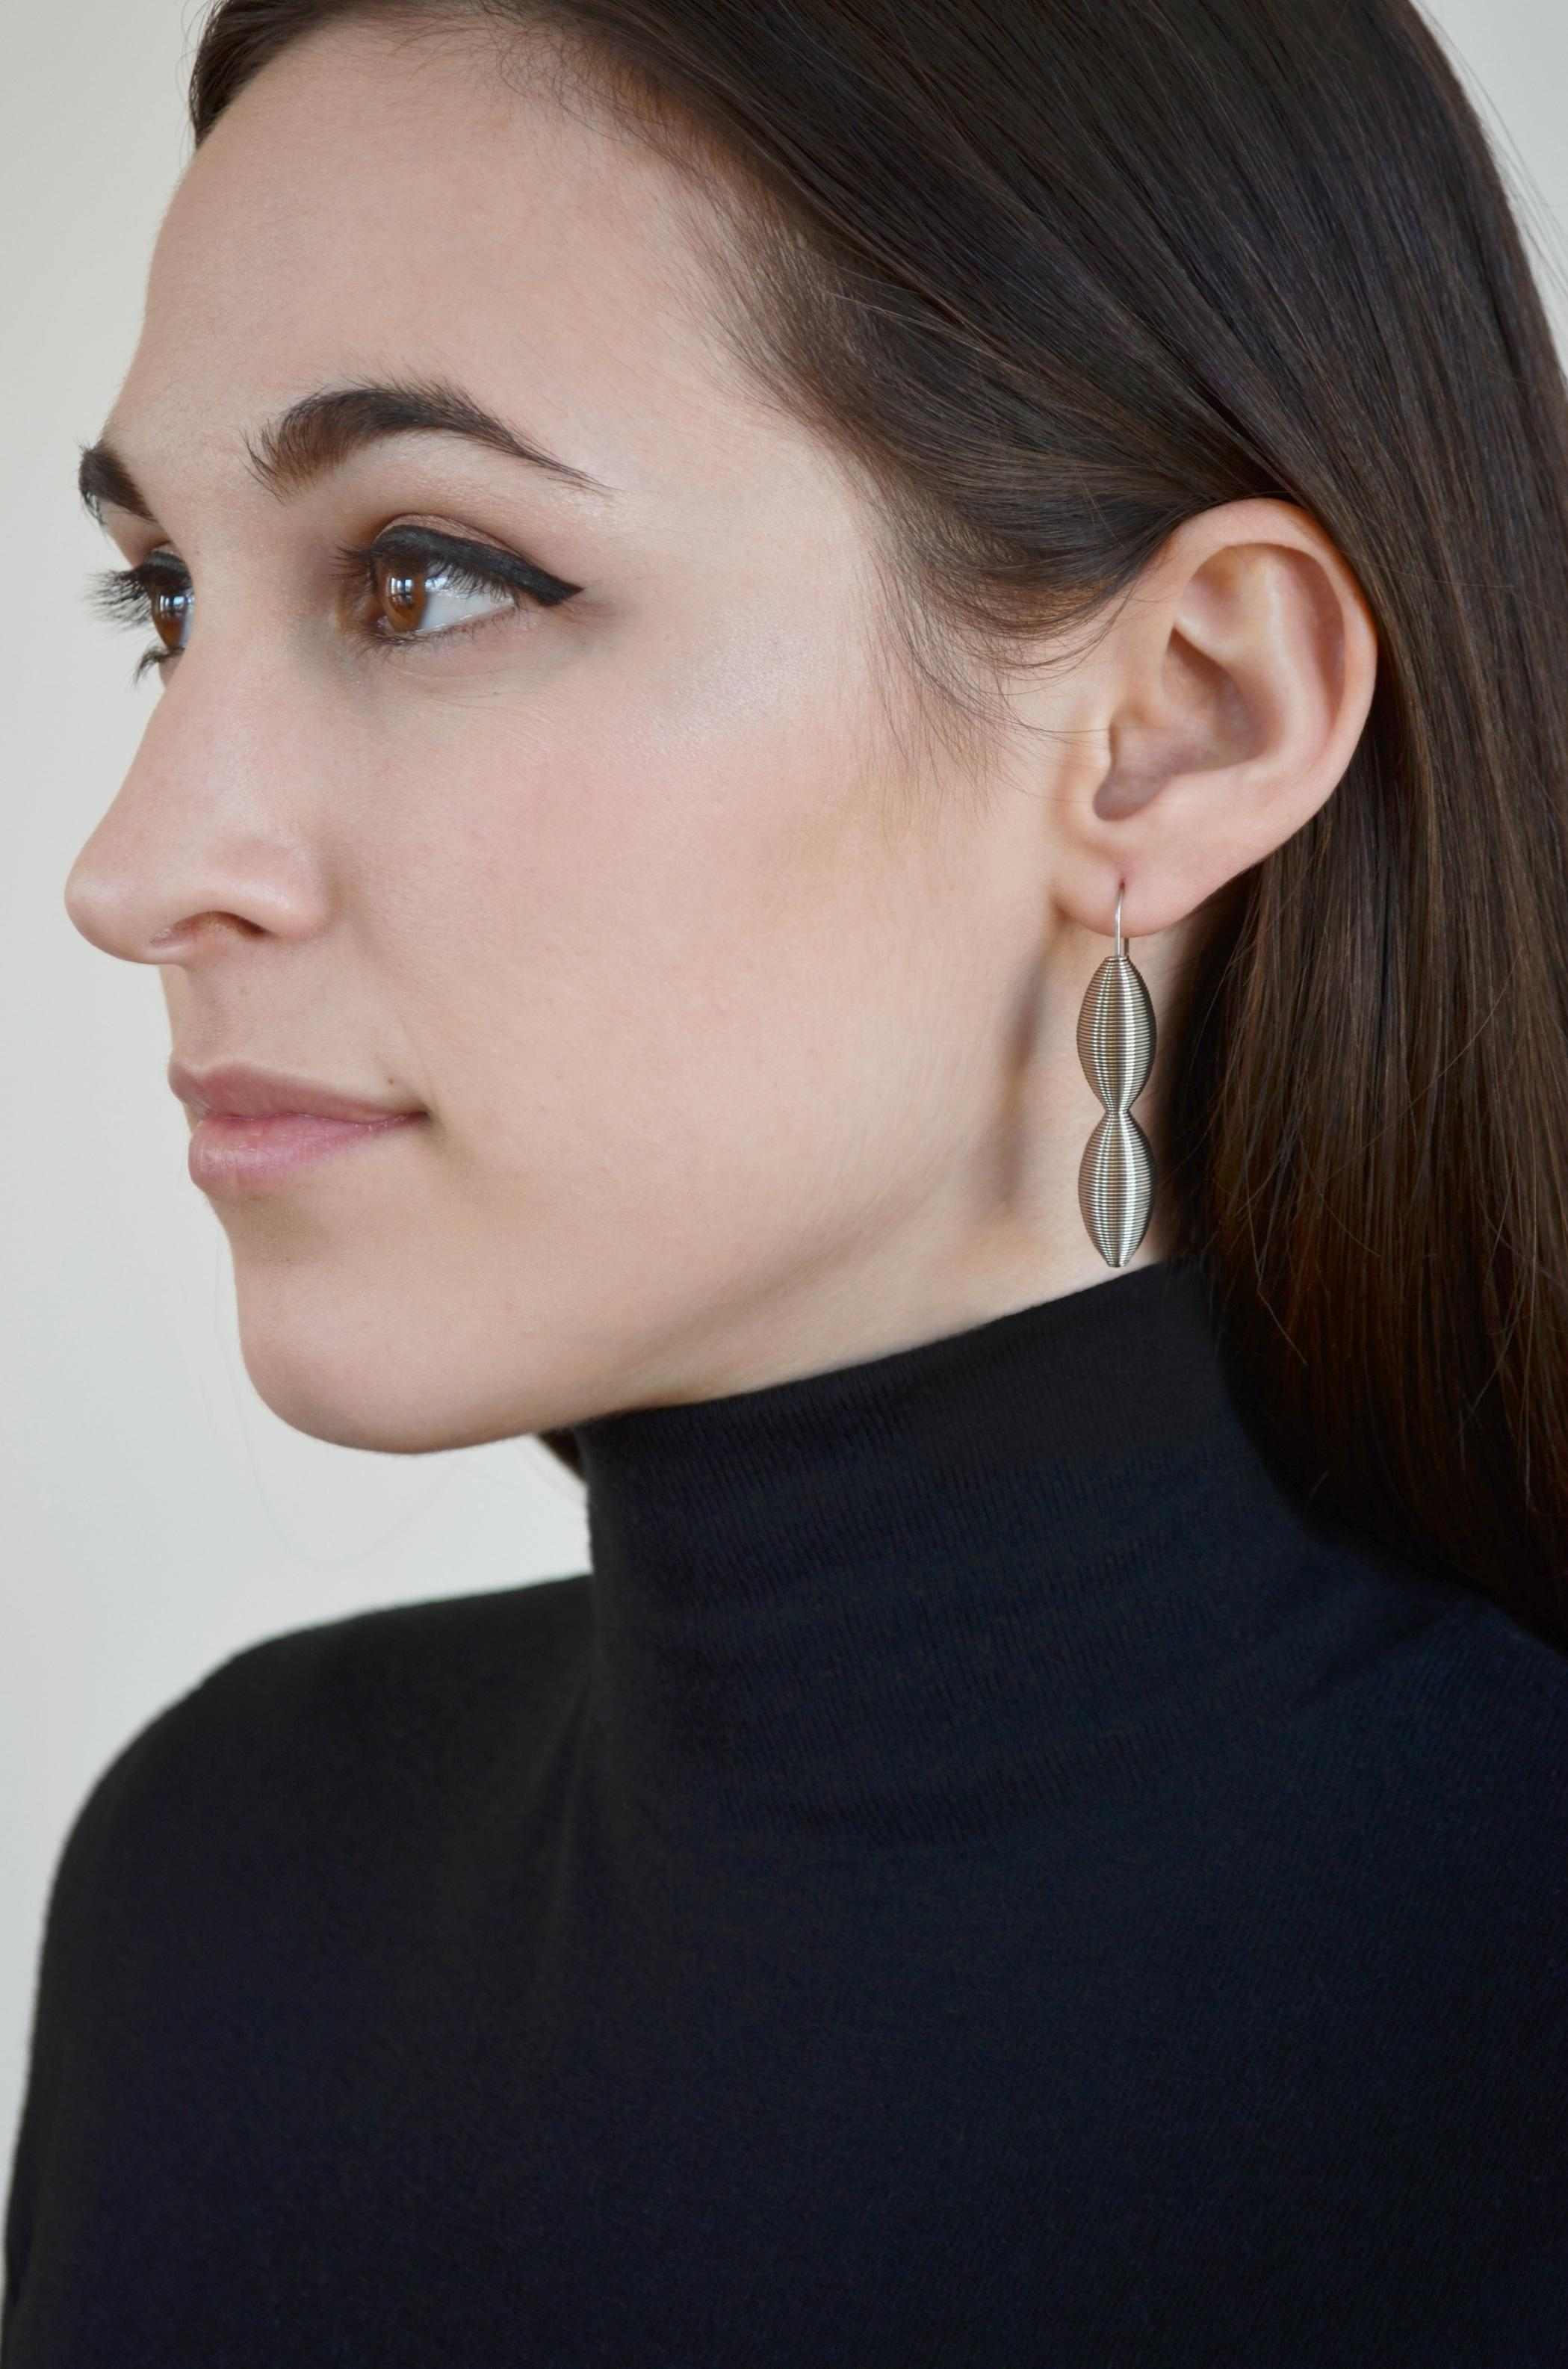 La Mollla Lotus Earrings